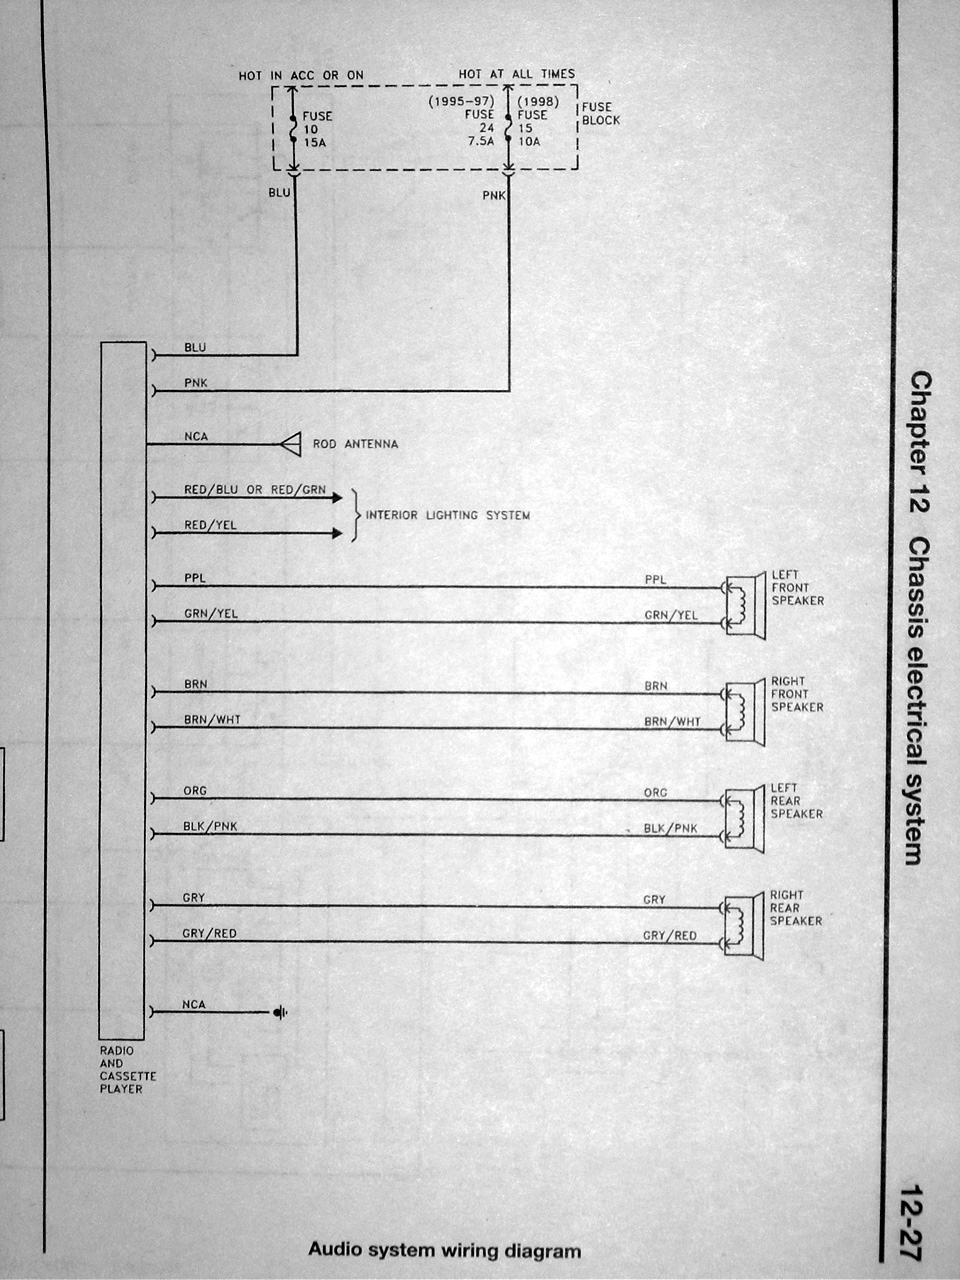 Wiring Diagram Thread *useful Info* Nissan Forum Nissan Frontier Engine  Diagram 06 Nissan Frontier Wiring Diagram